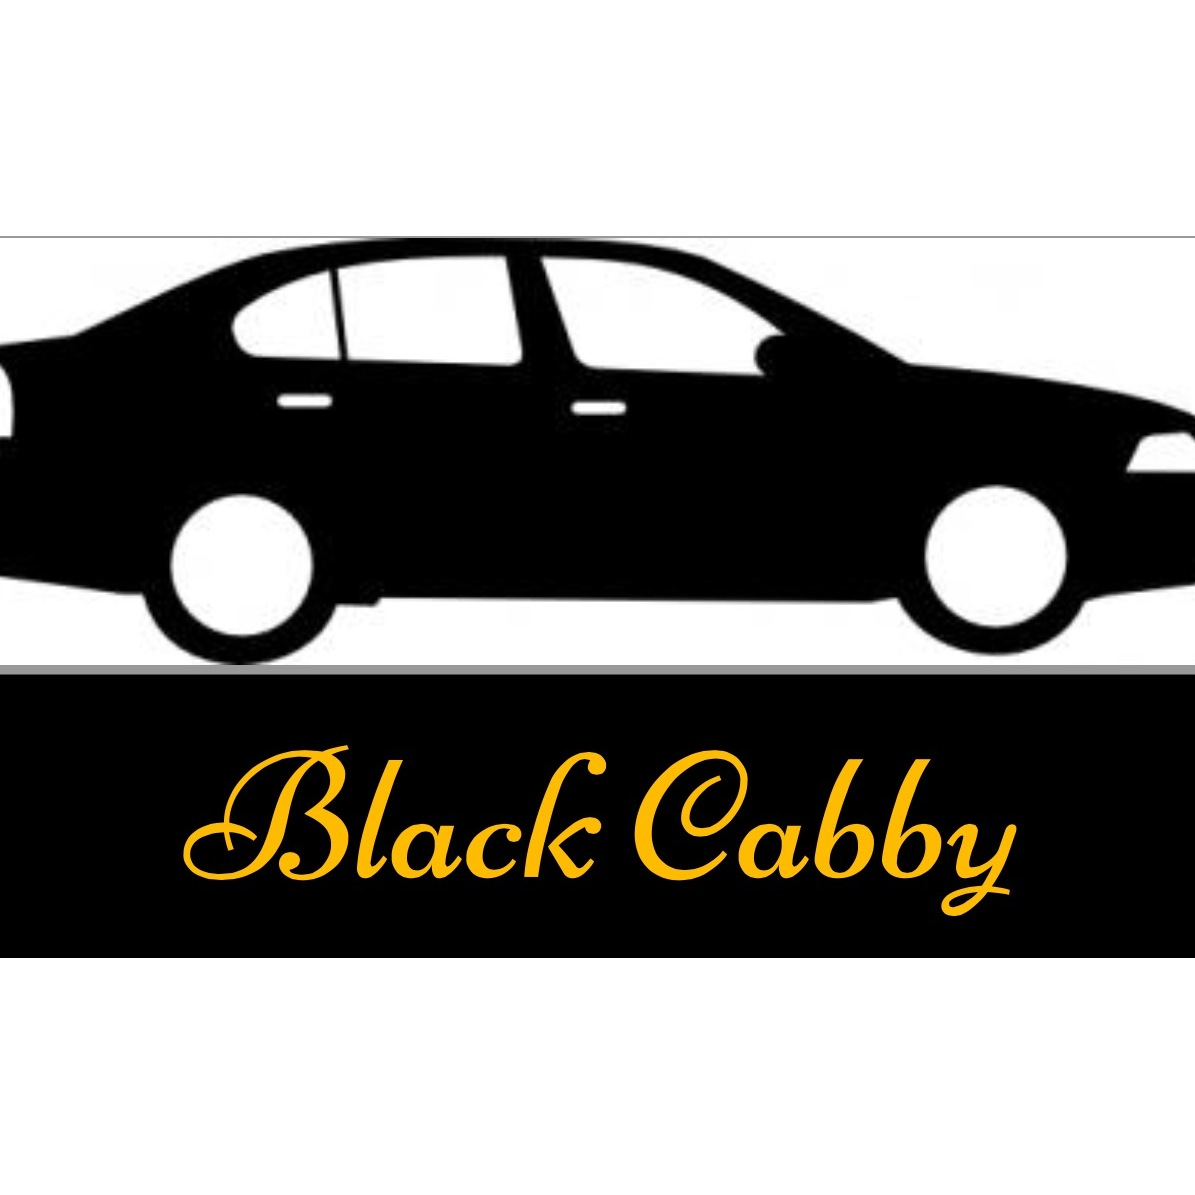 Black Cabby, EWR Newark Liberty Airport Car Service and Local Taxi Cab Service